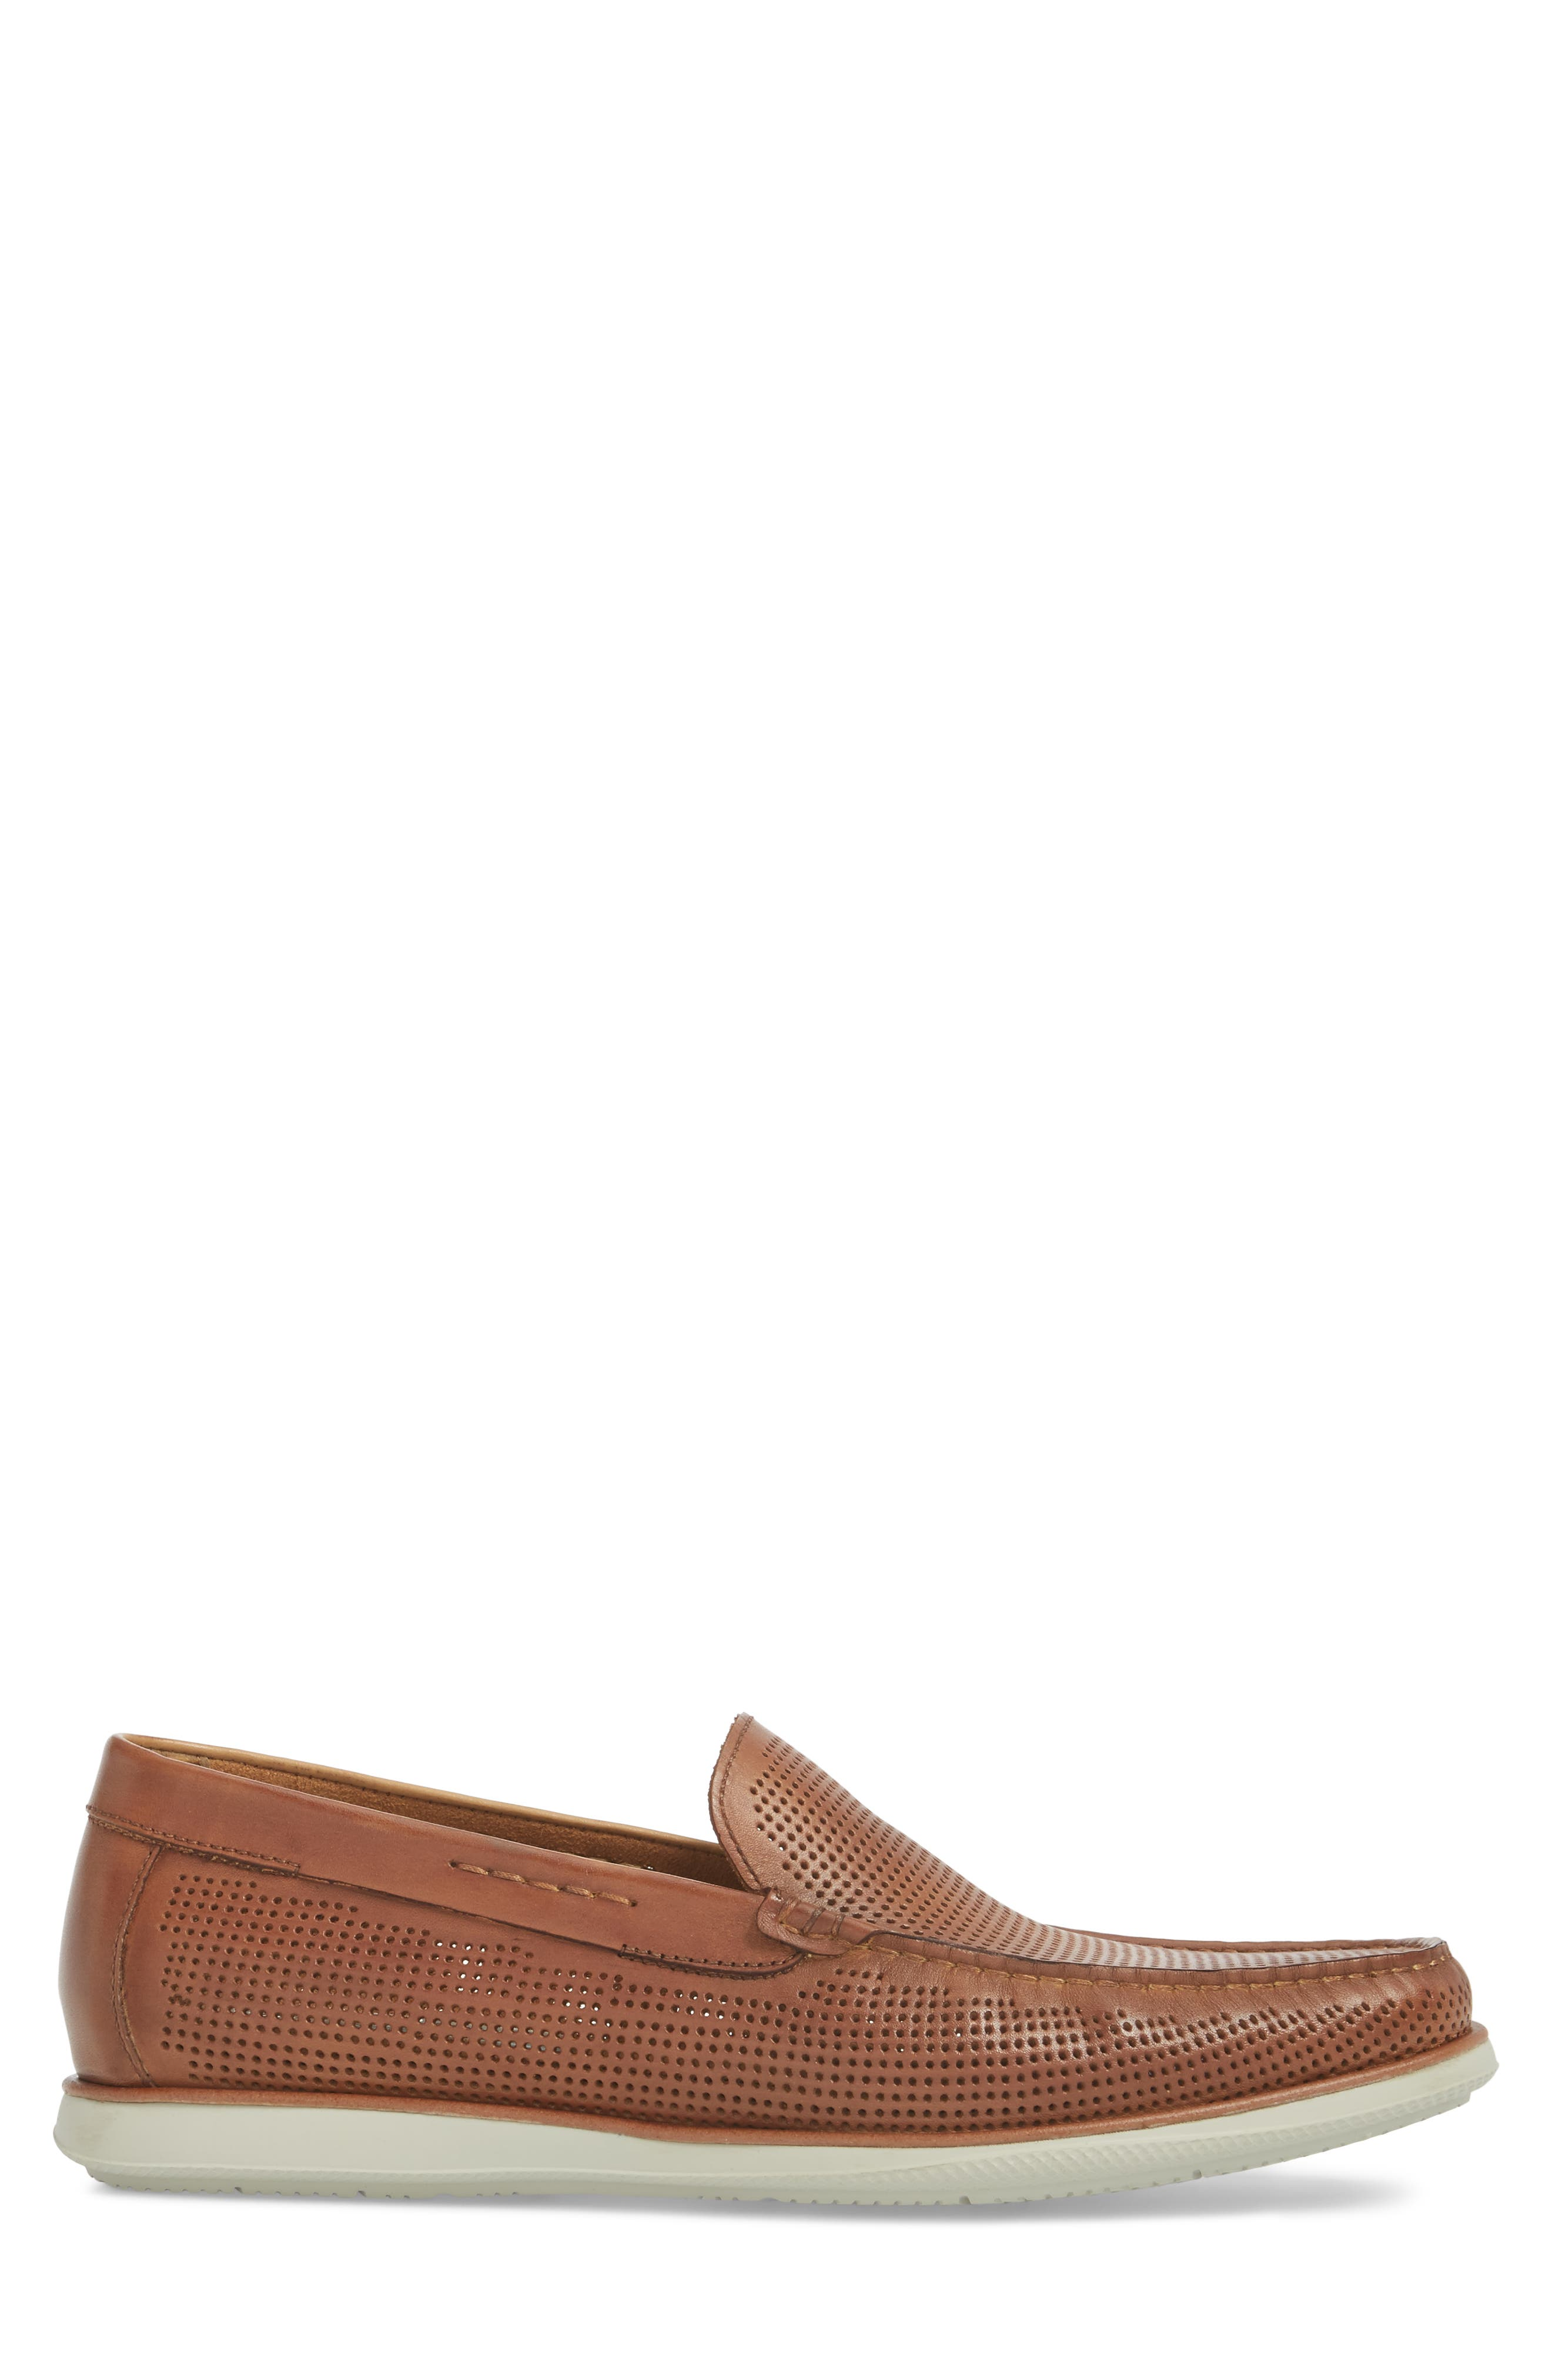 Cyrus Venetian Loafer,                             Alternate thumbnail 8, color,